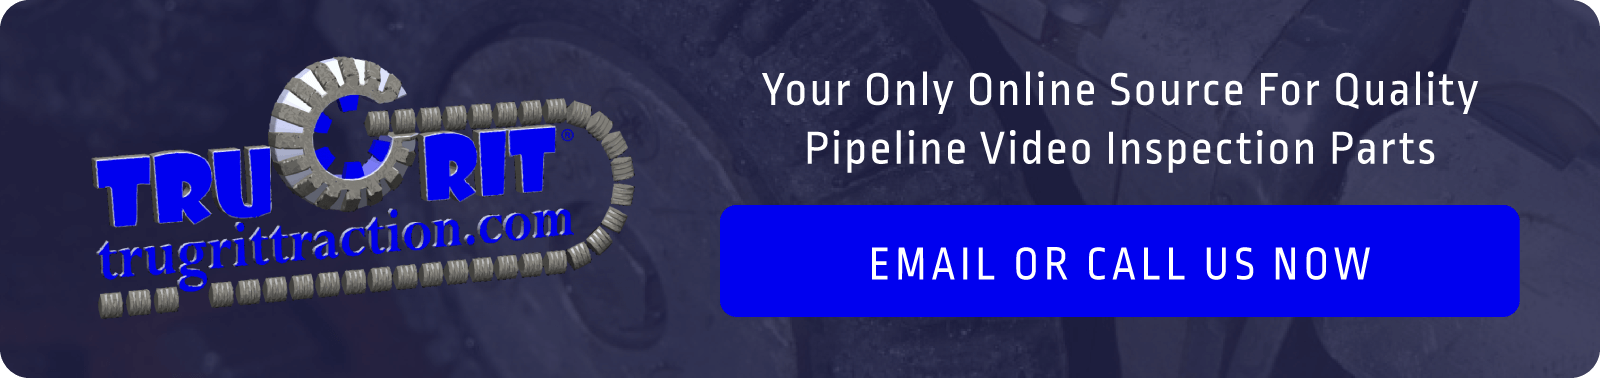 Save on Video Pipeline Inspection Equipment